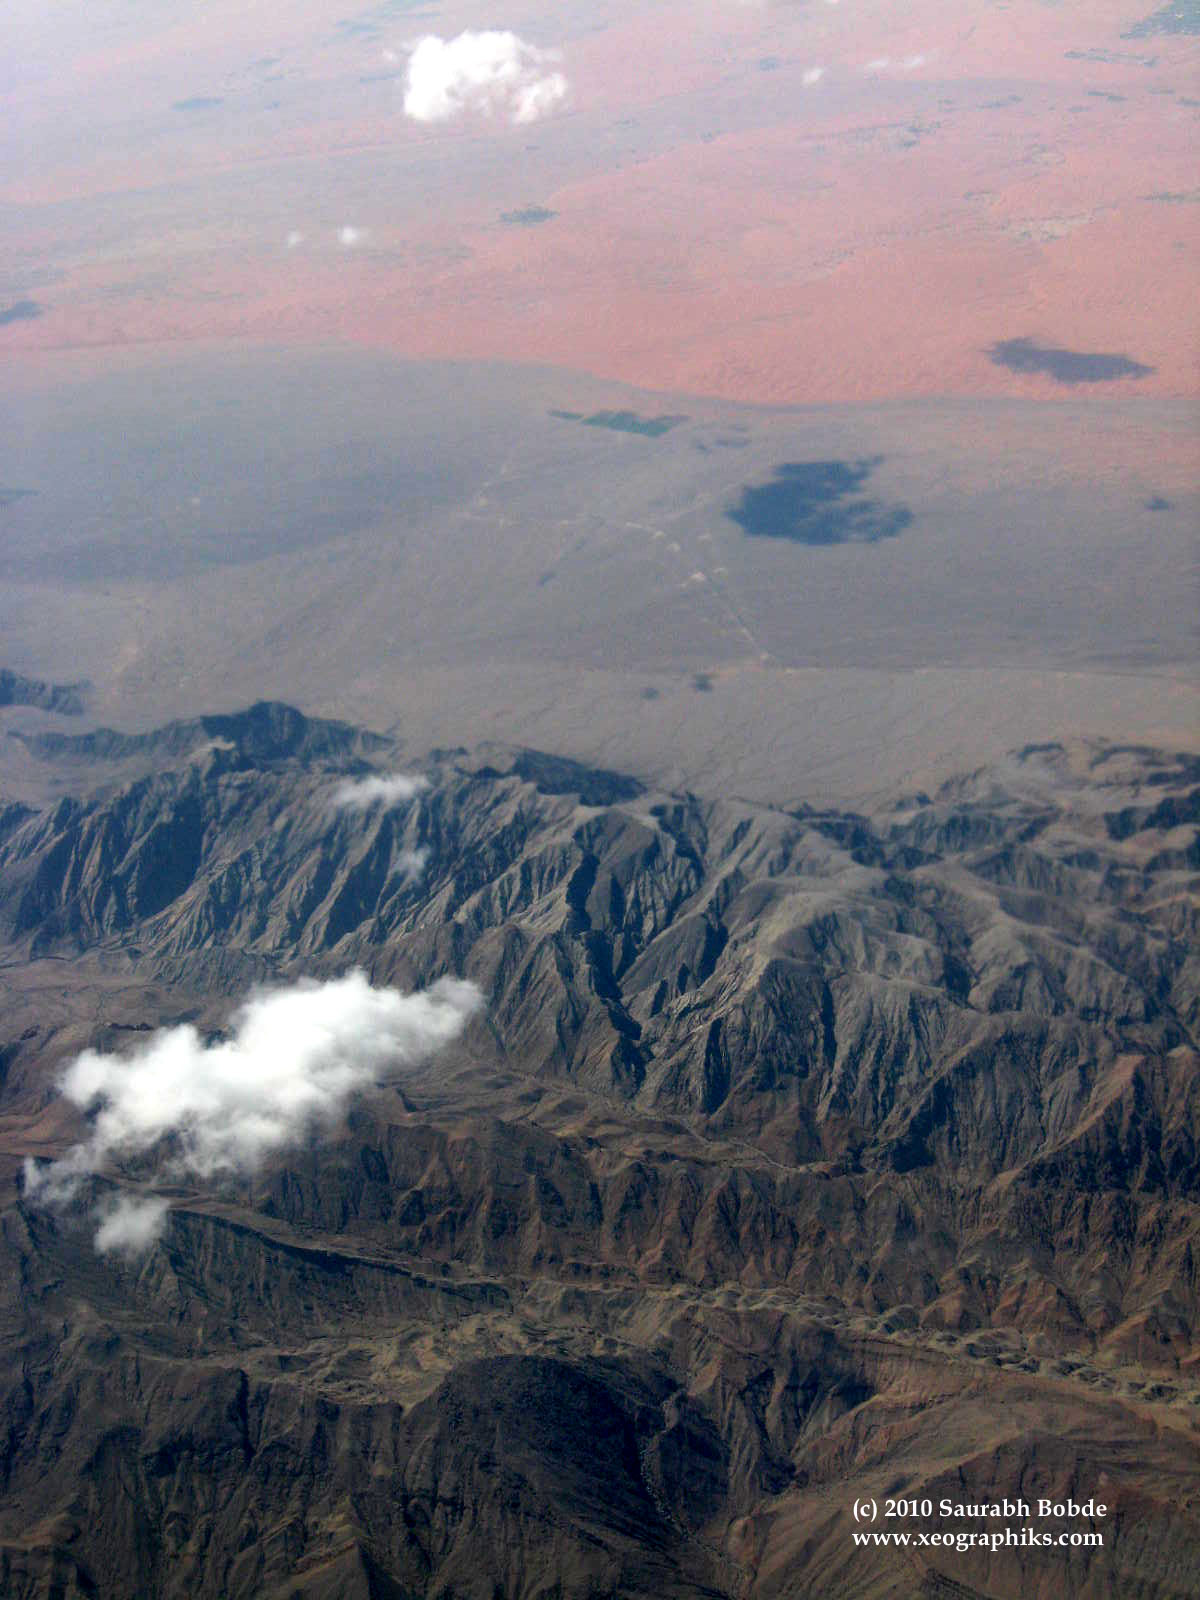 The barren landscape could well resemble that of another planet, like Mars. The white, fluffy cloud floats gracefully against the brown, barren mountains and reddish soil. (Just in case, this is still on Earth!)